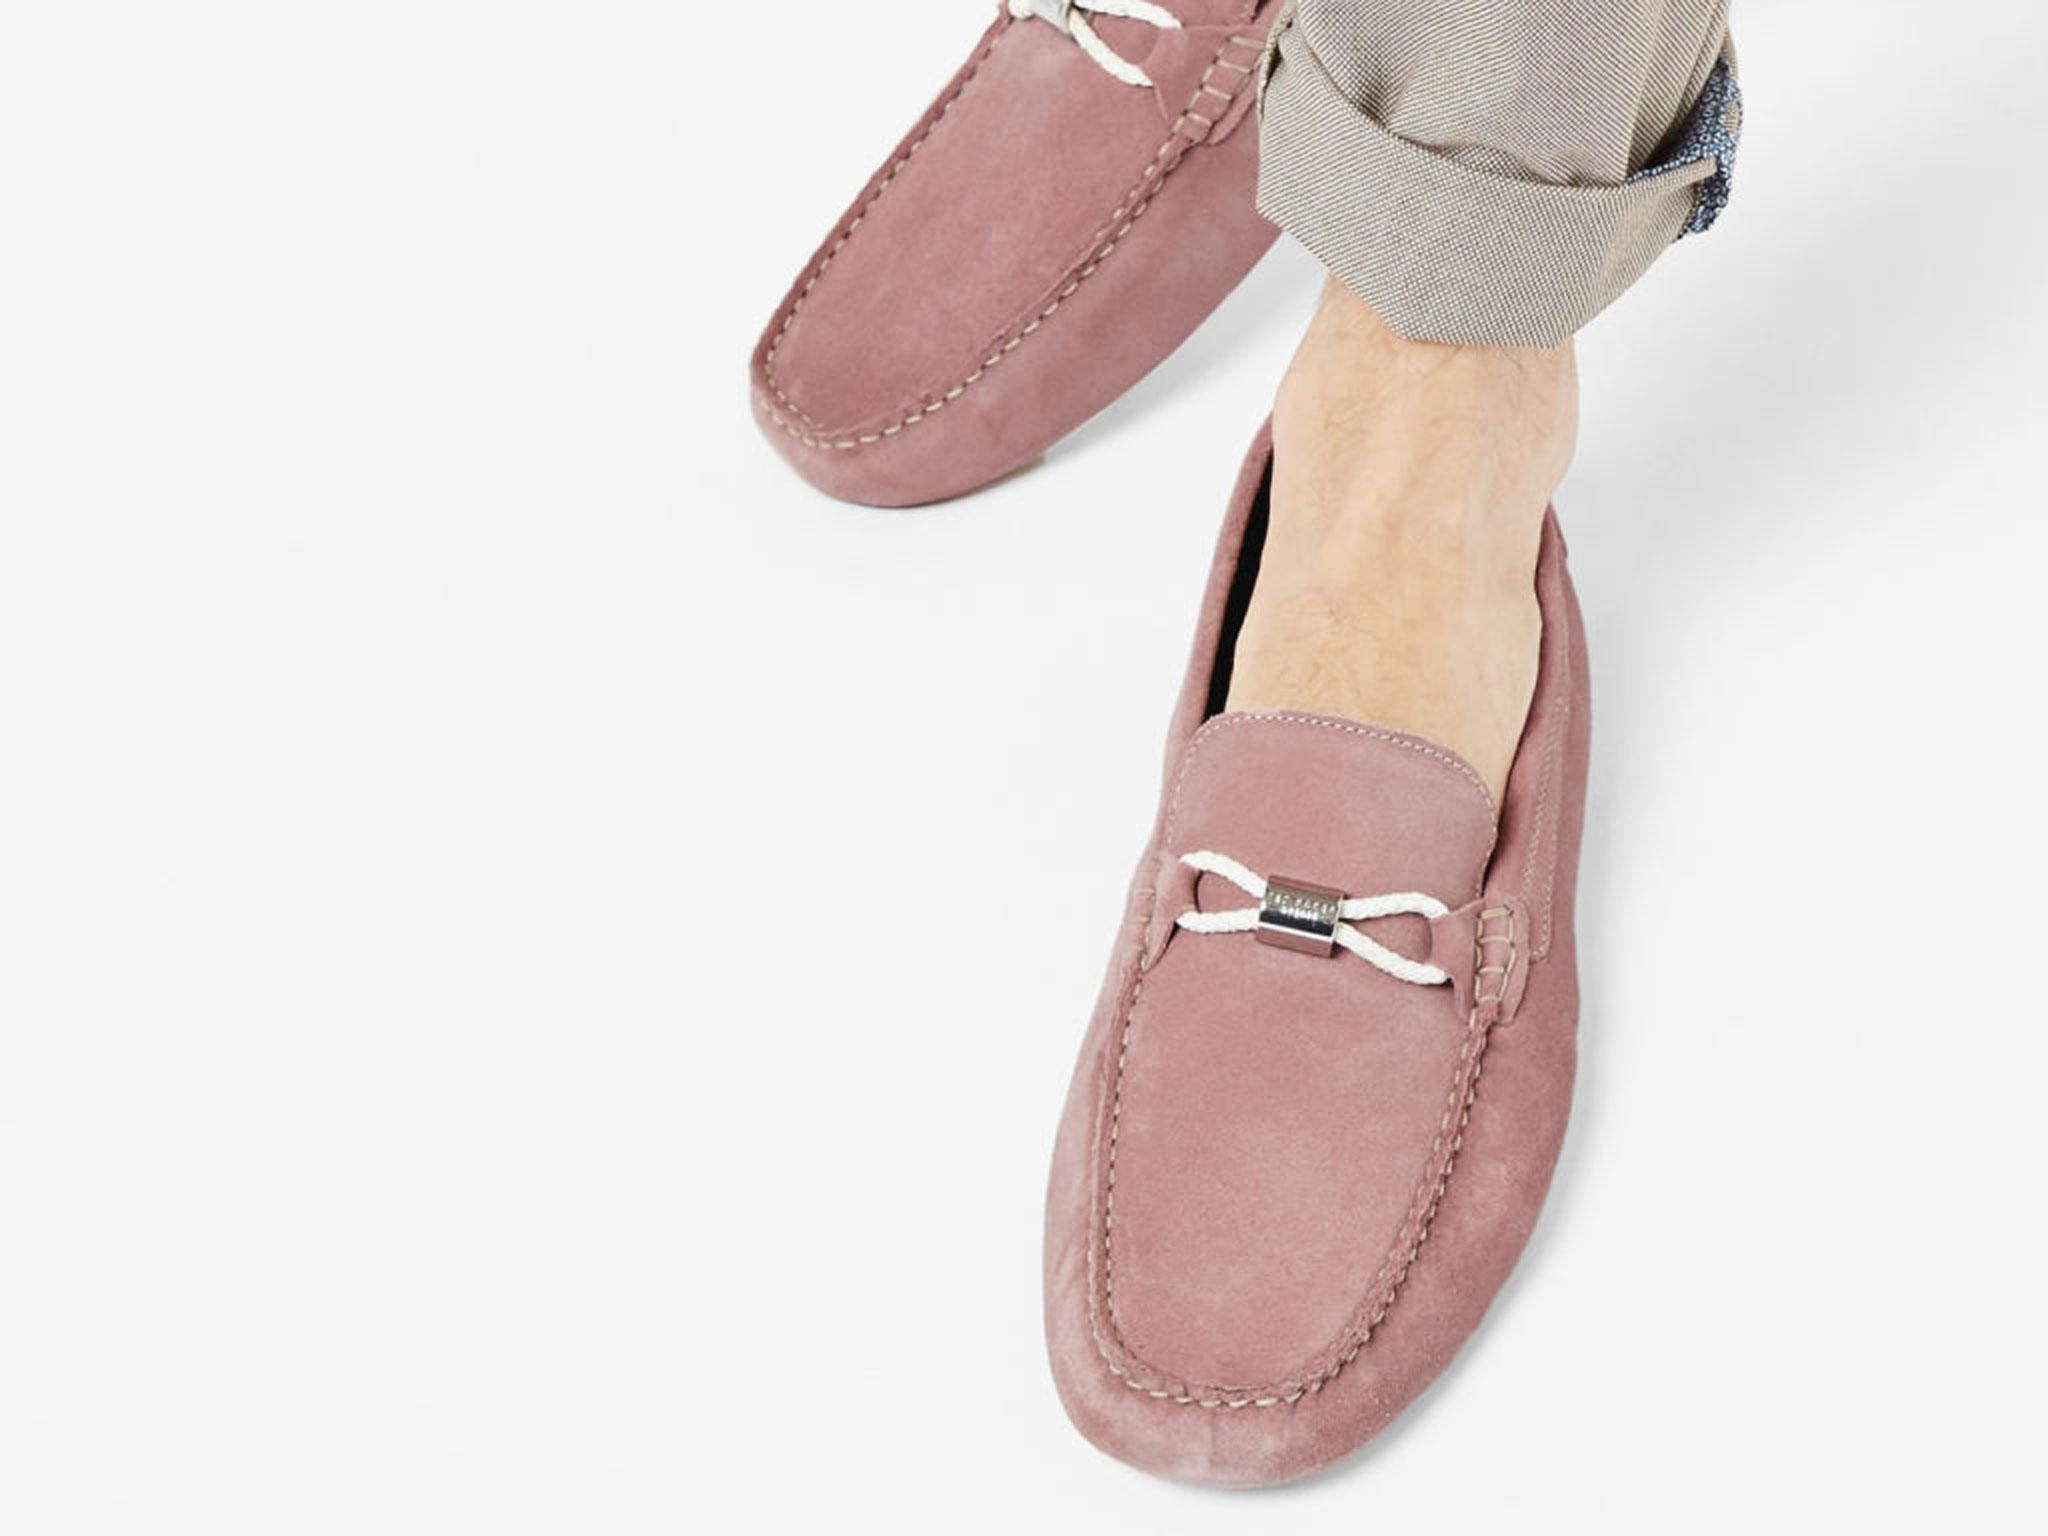 Ted Baker Mens Espadrilles Shoes